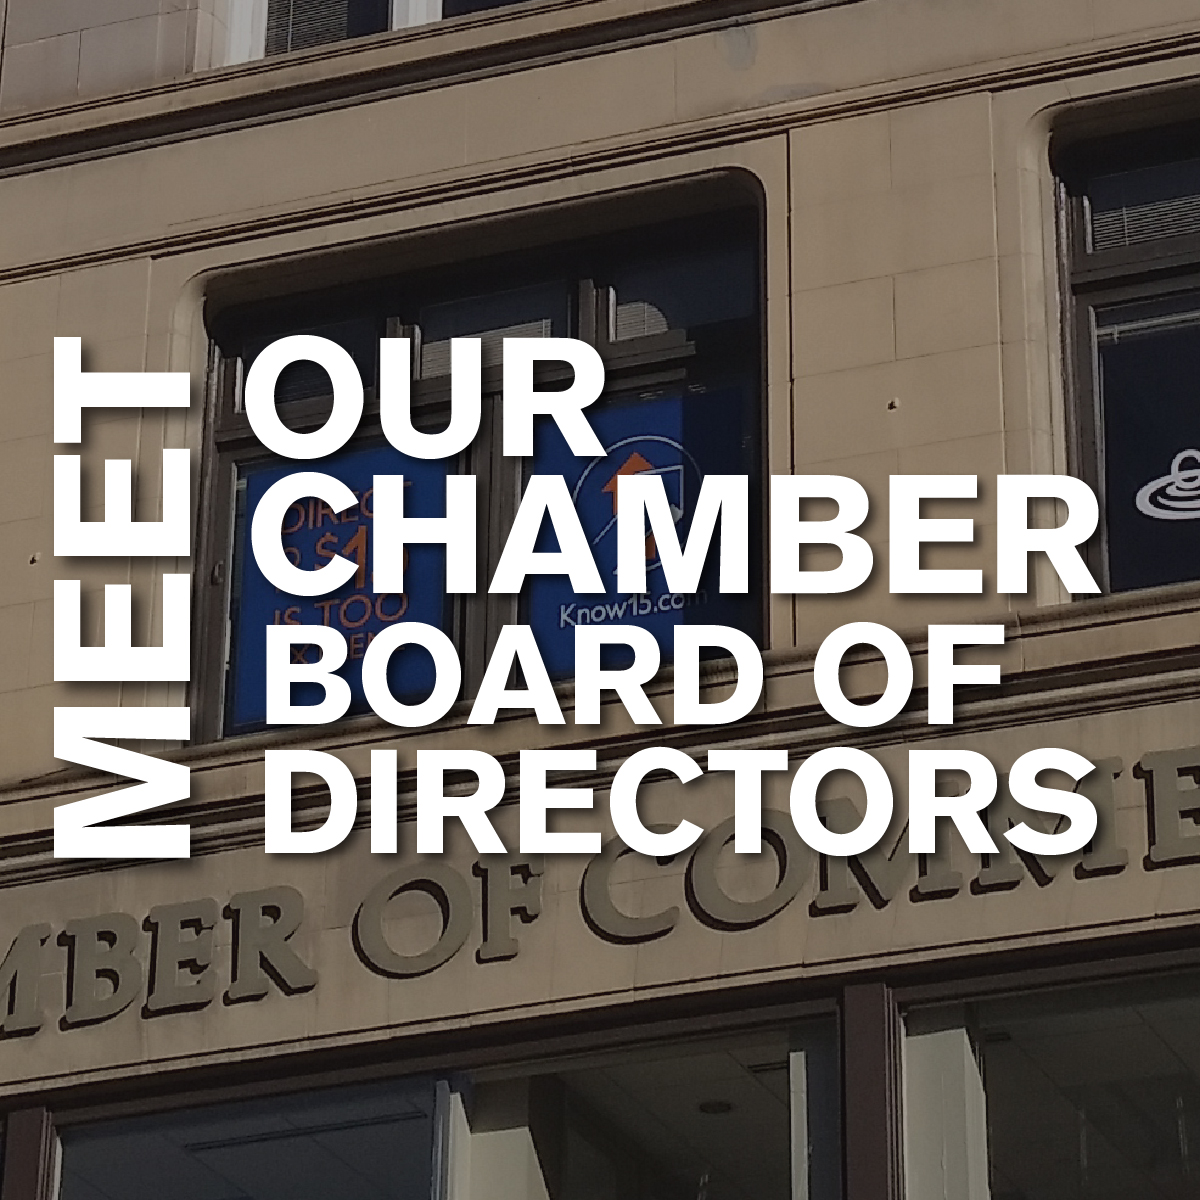 Meet Our Chamber Board of Directors